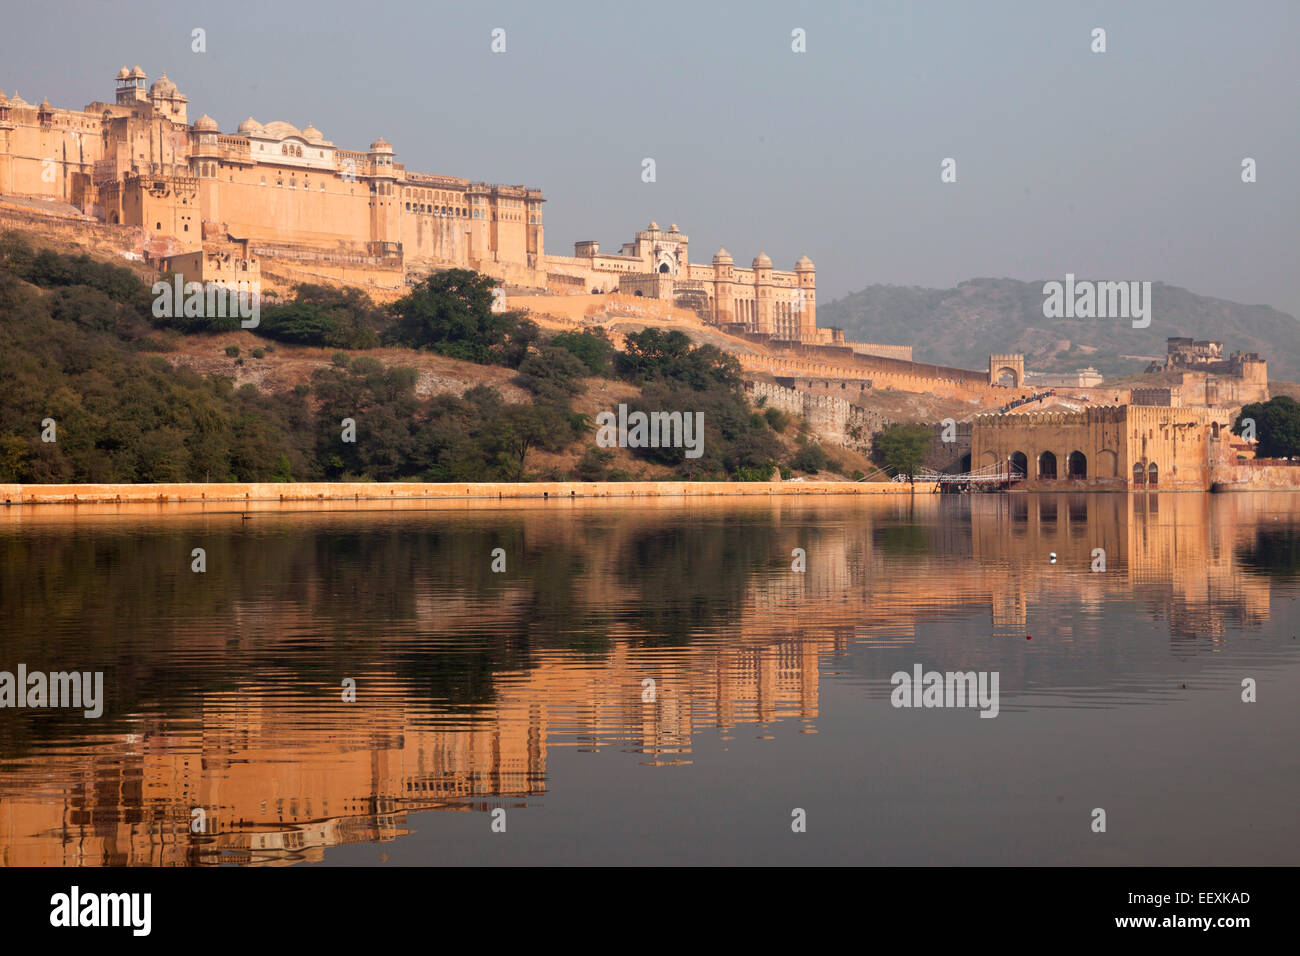 Fort Amber et lac Faleolo, Jaipur, Rajasthan, Inde Photo Stock